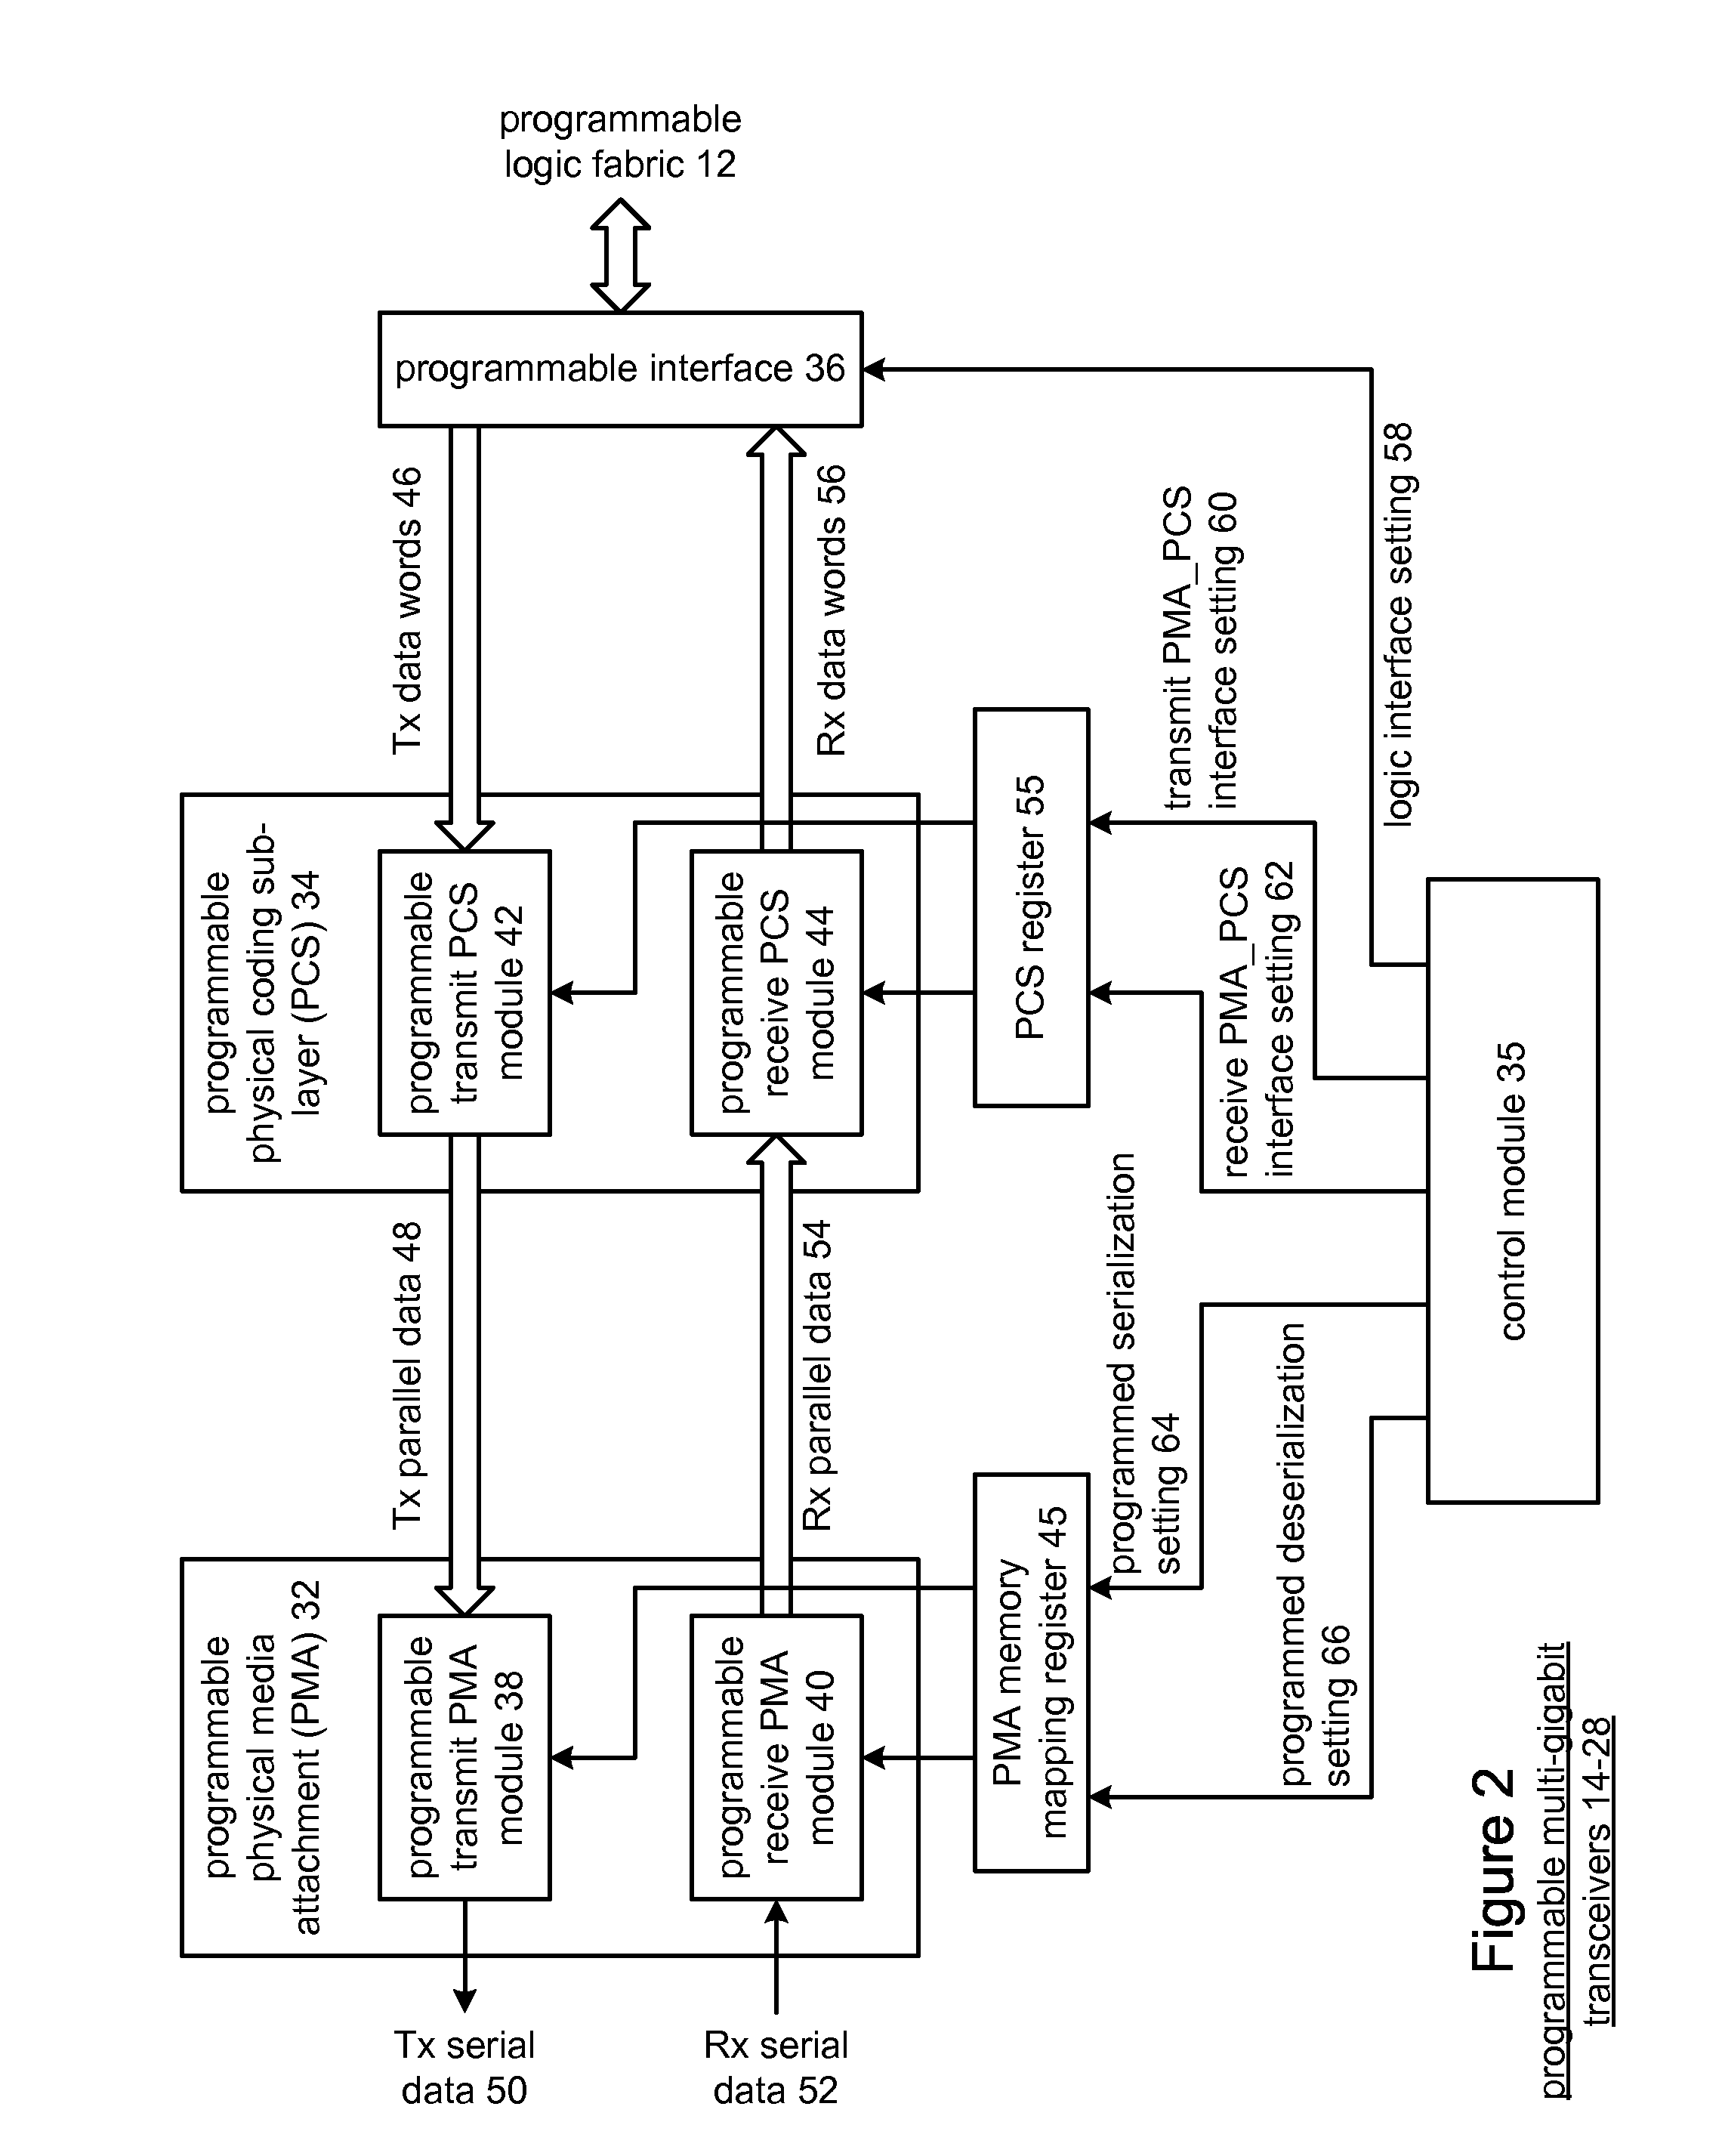 Patent Us 8391343 B1 Block Diagram Of The Physical Coding Sublayer Pcs Ip Core Images